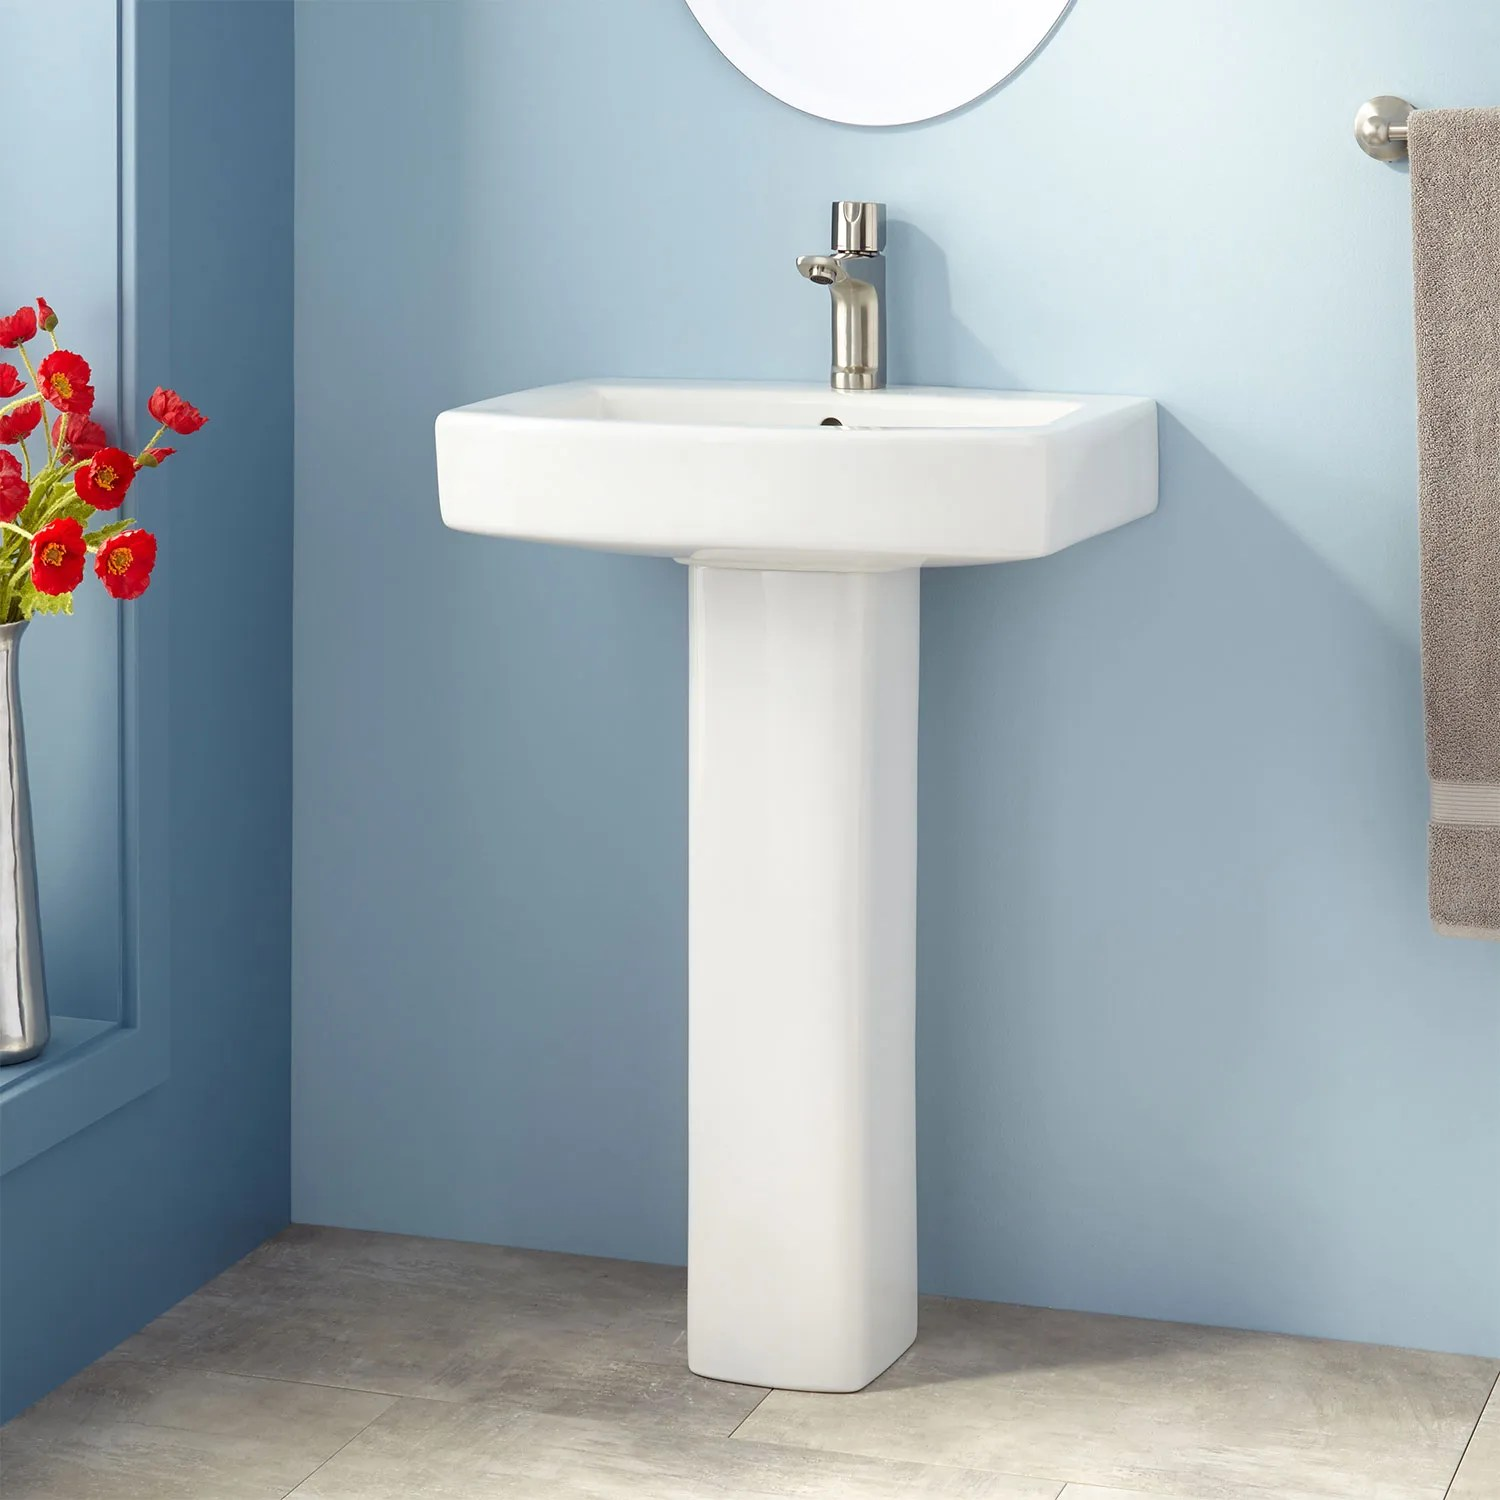 Small Rectangular Bathroom Sink 8 Small Bathroom Sinks That Will Make A Big Impact Architectural